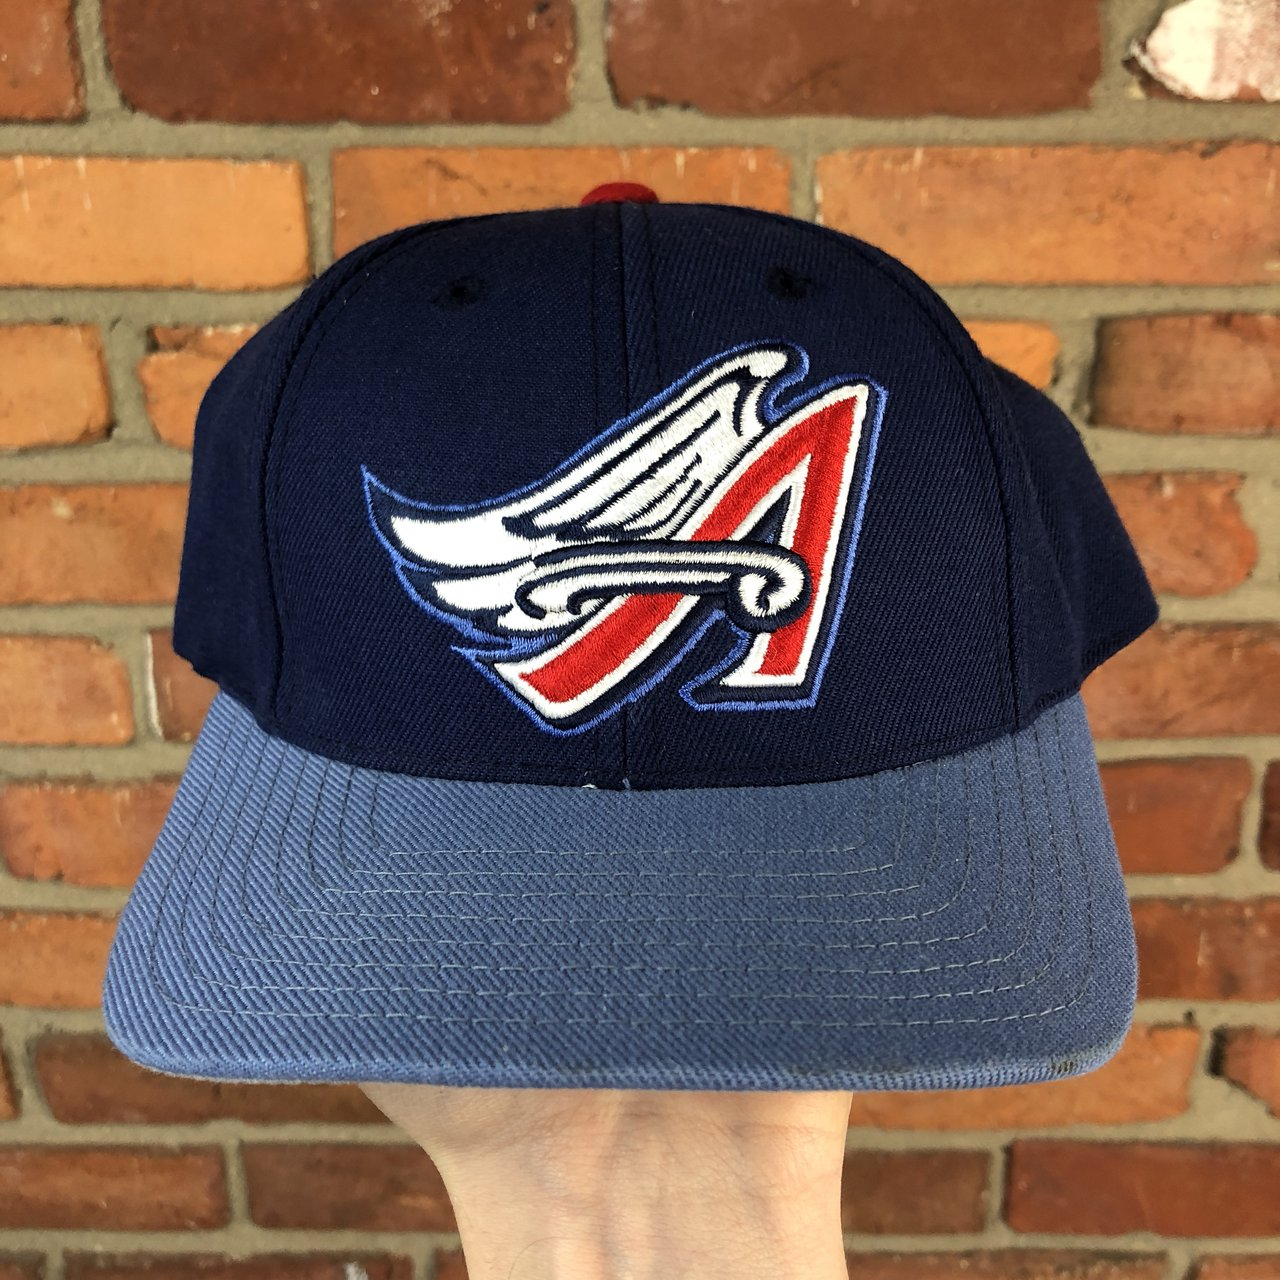 3110e2f47a0 Vintage 1990s Anaheim Angels MLB Baseball Snapback Athletic - Depop